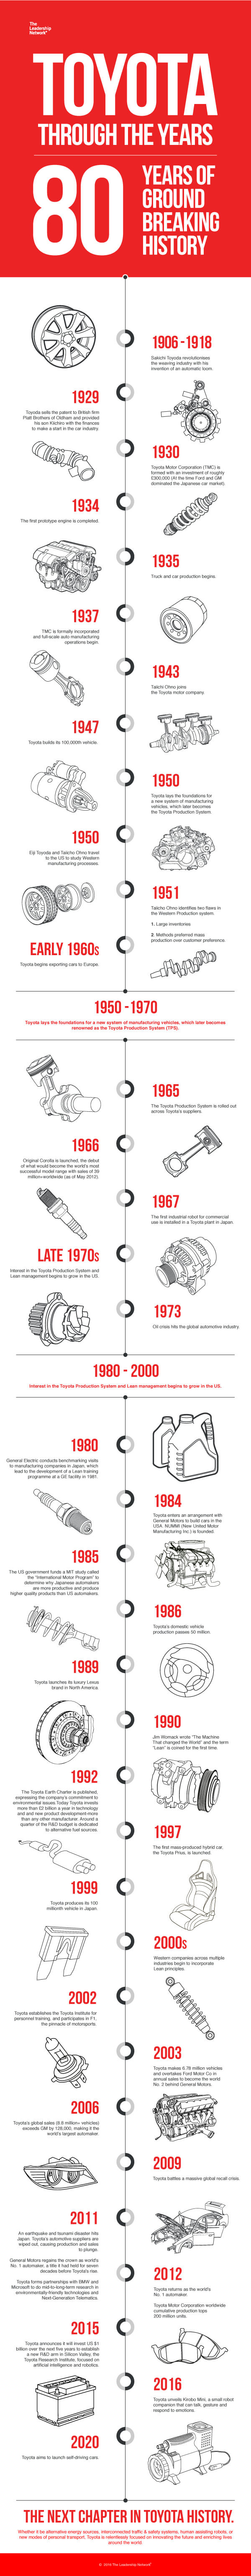 toyota-through-the-years-infographic-plaza